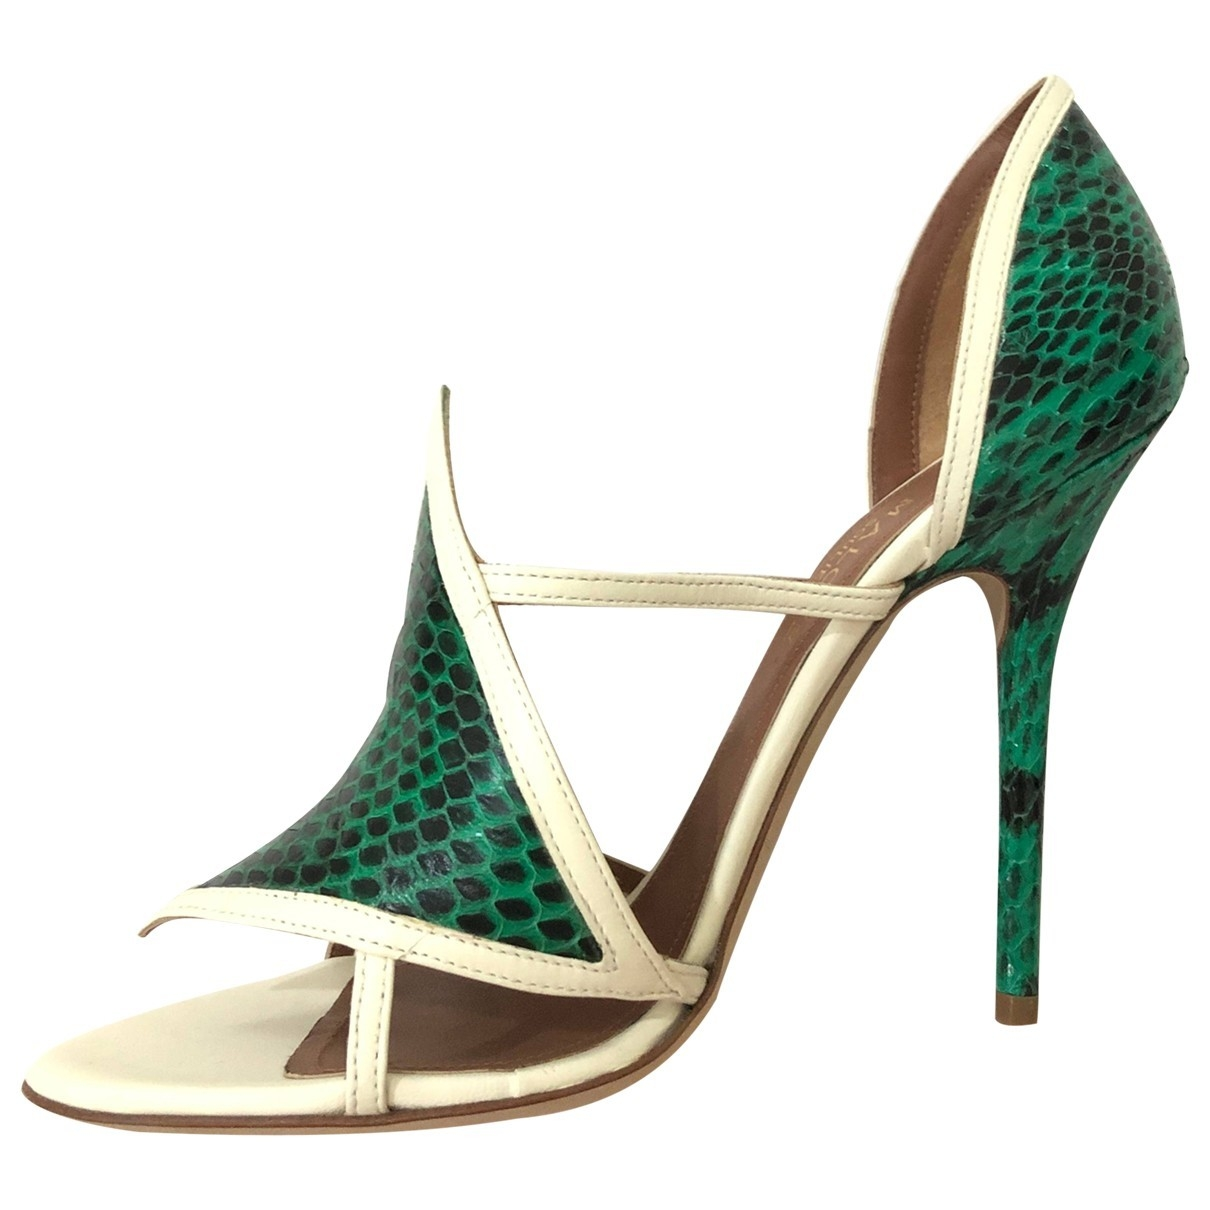 Malone Souliers \N Green Water snake Sandals for Women 38 EU